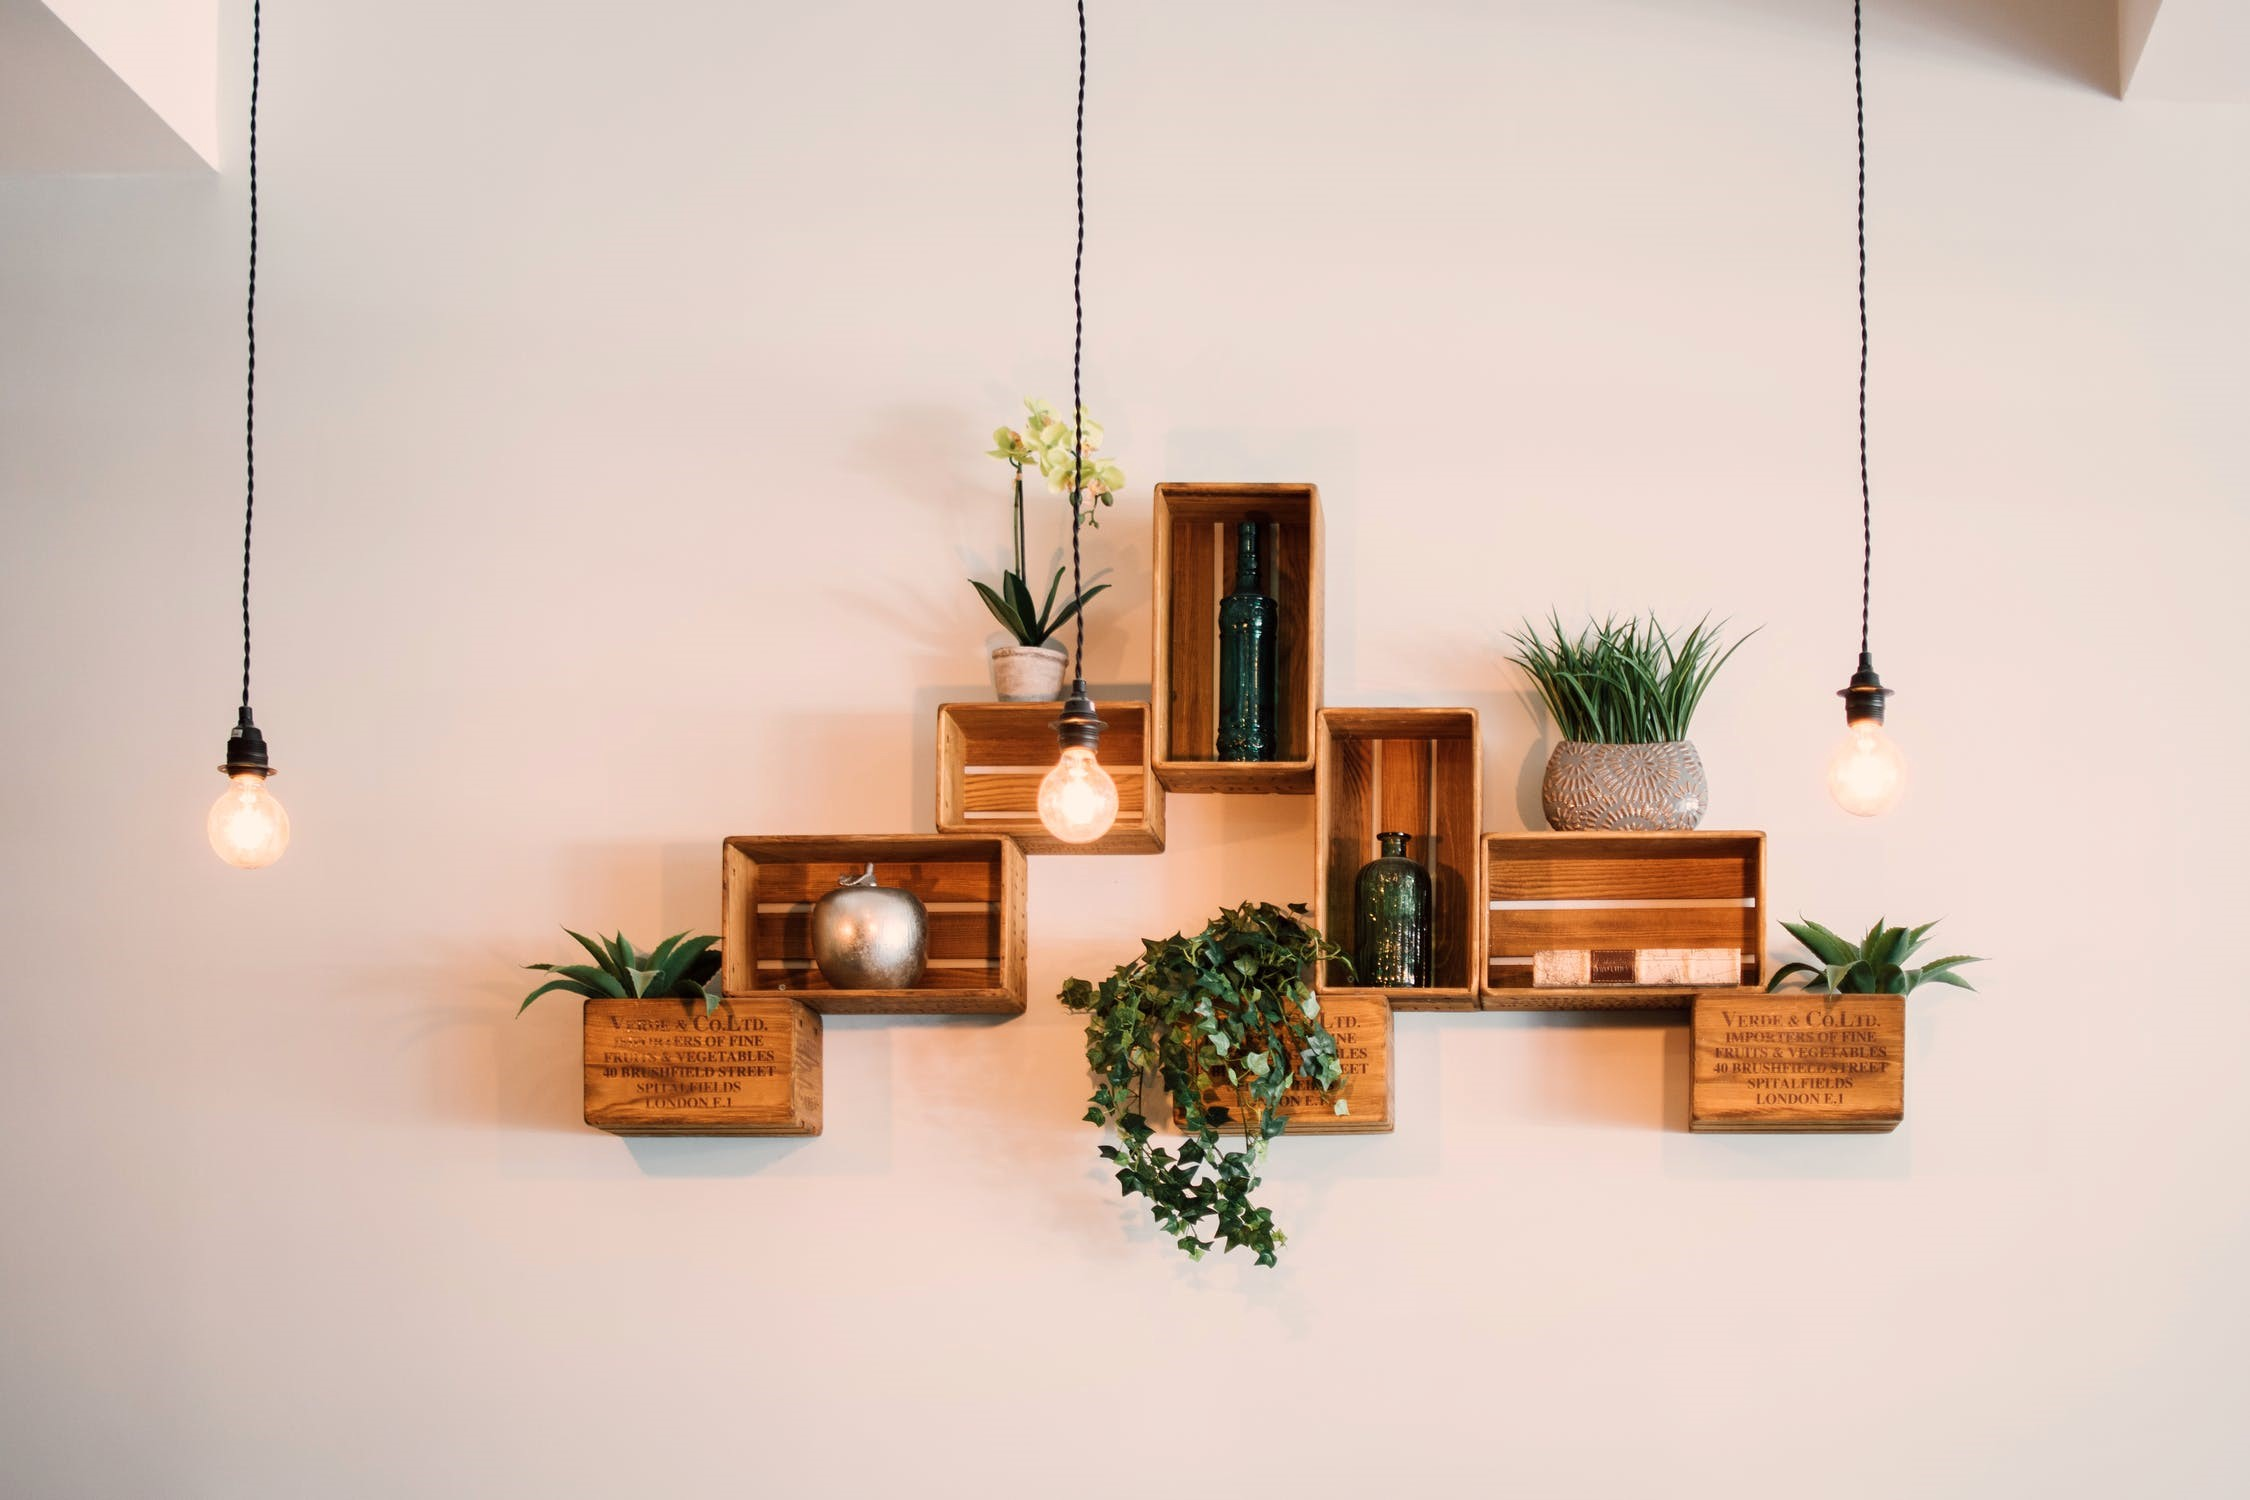 10 Budget-Friendly Options for Styling Your Rental Property | Brighten Up Your Property with Greenery